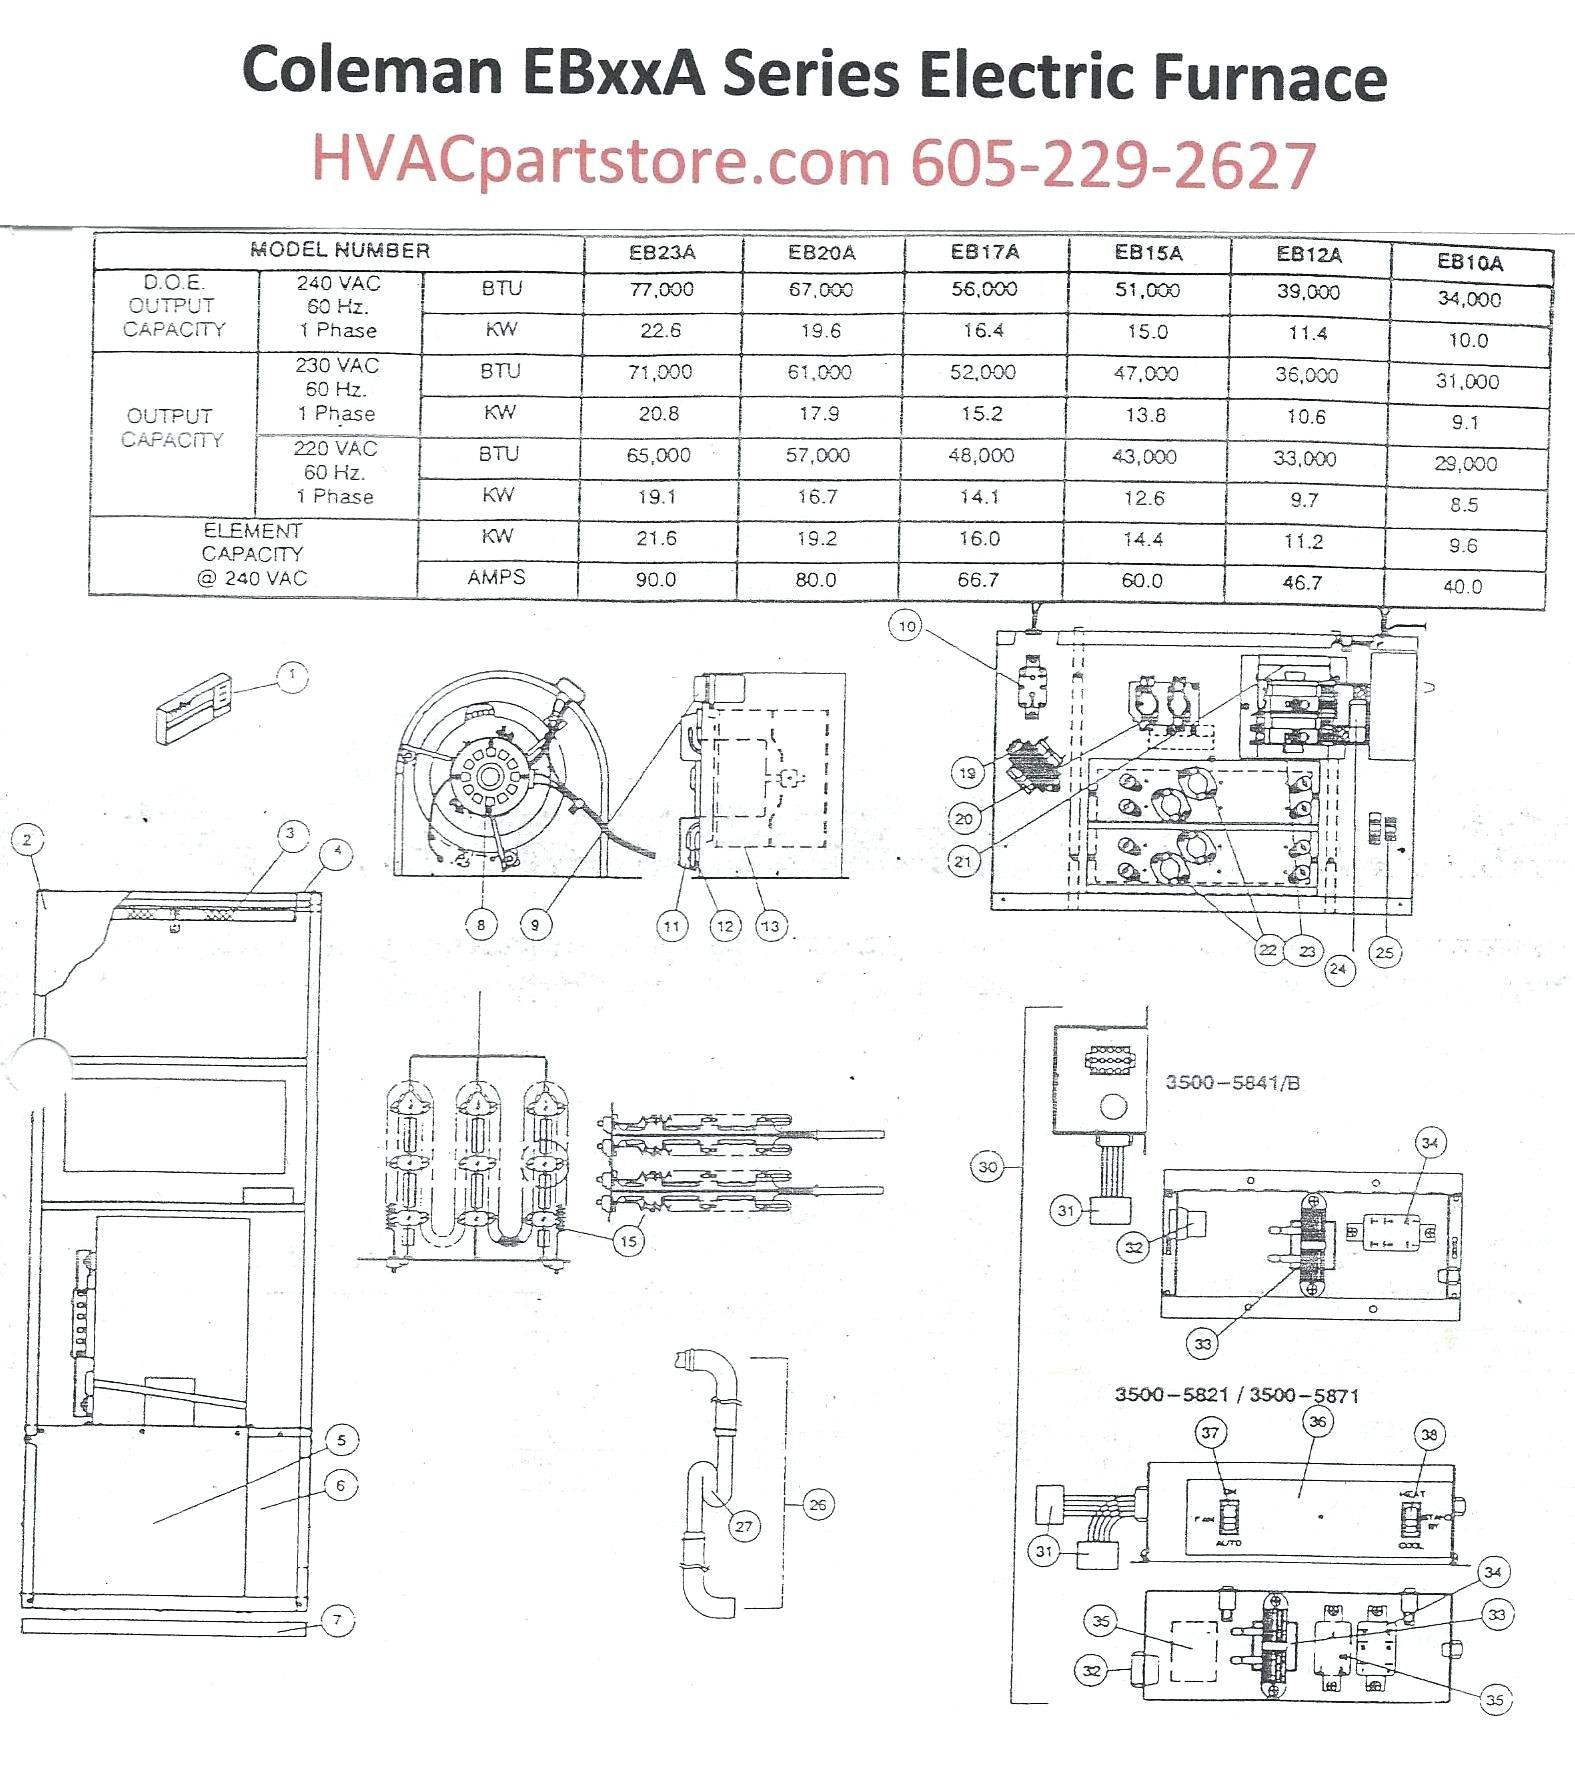 Coleman Electric Furnace Wiring Diagram Sample